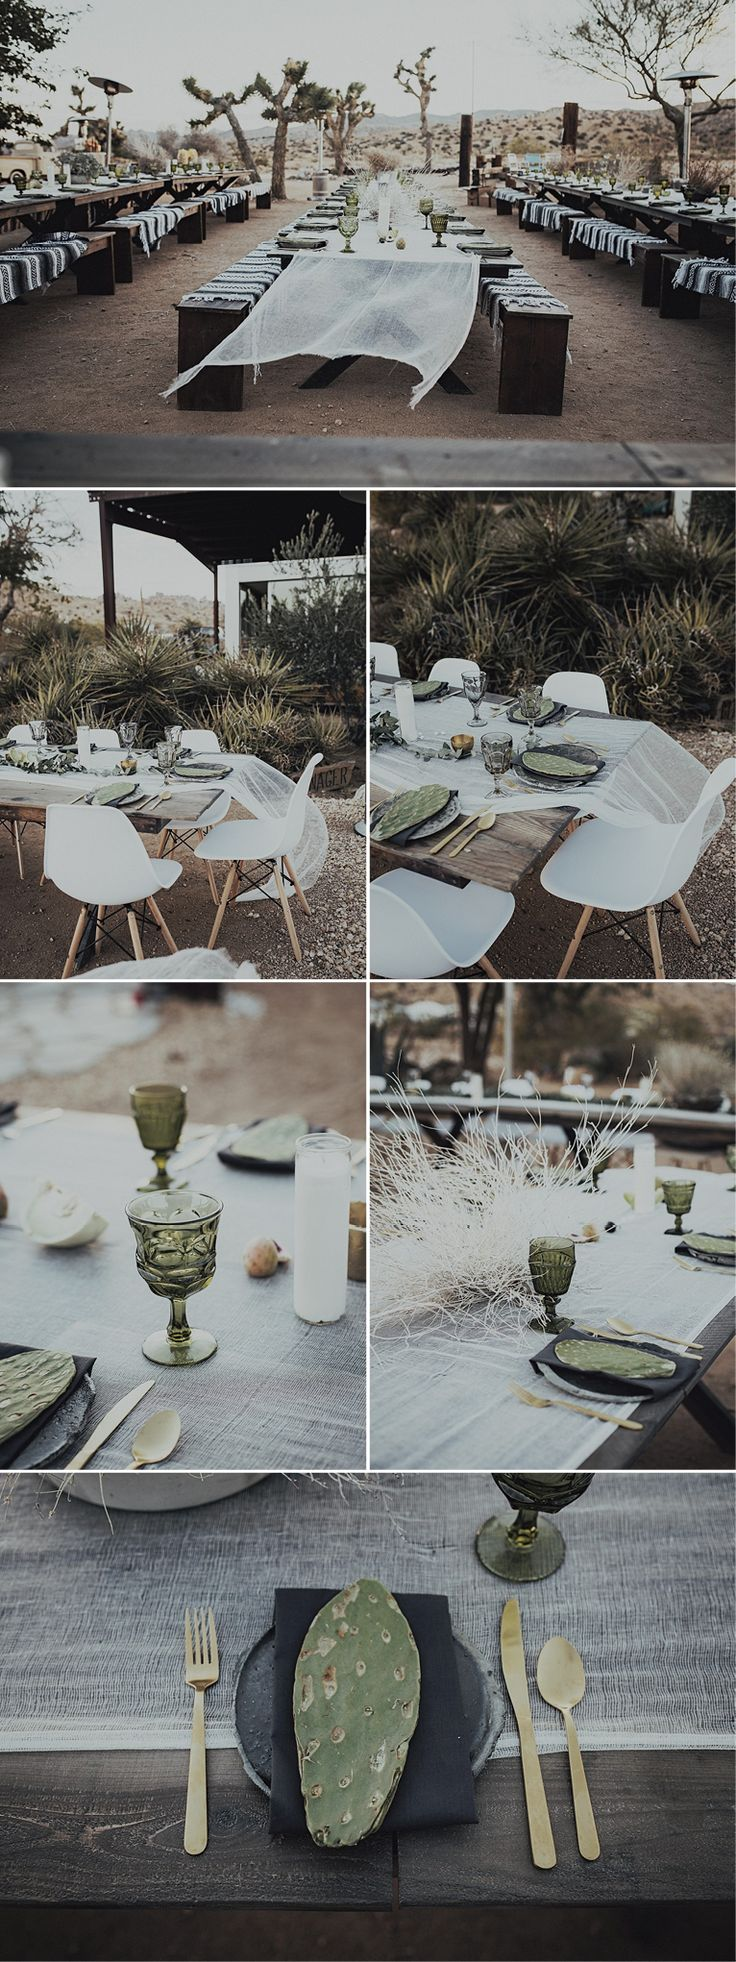 Take a look at this stunning table styling at Sacred Sands in Joshua Tree, California.   Photos: Branch & Cole